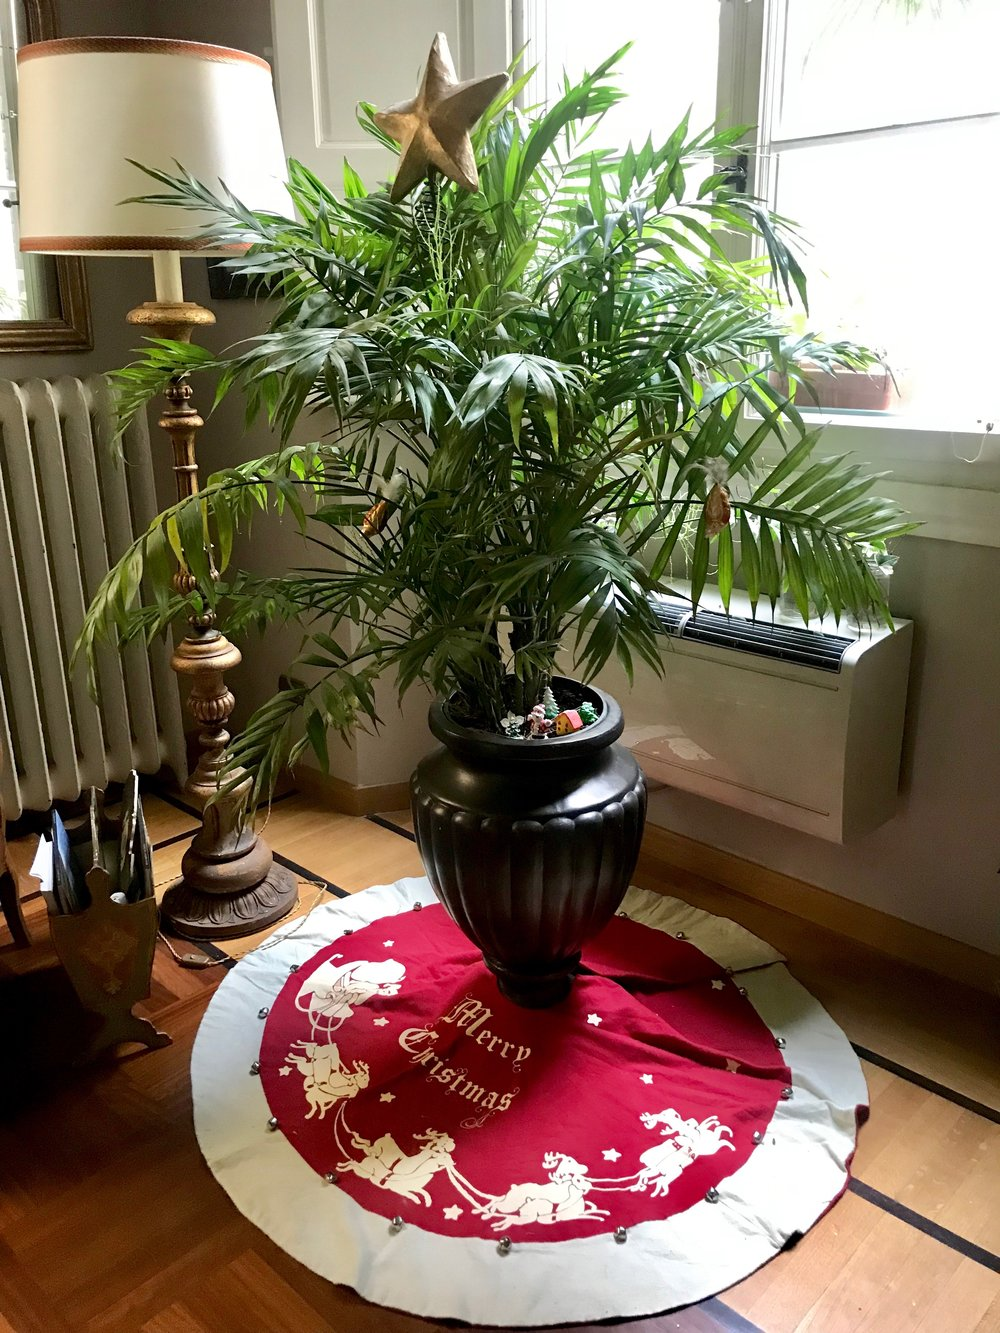 Our Christmas palm tree.